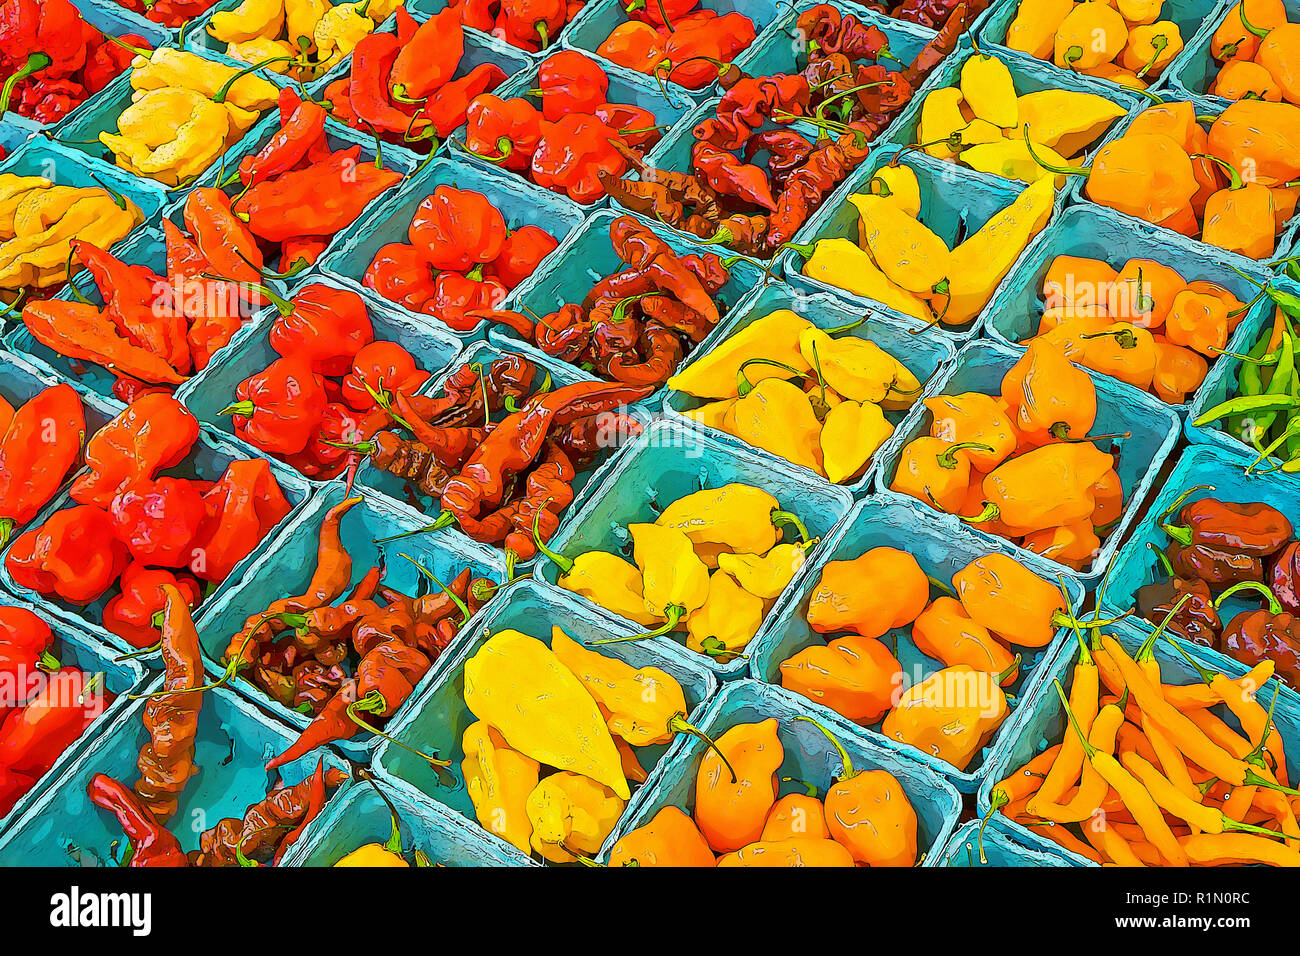 Variously colored small peppers for sale at the Union Square Green Market in Manhattan. COLORS MANIPULATED IN PHOTOSHOP. - Stock Image